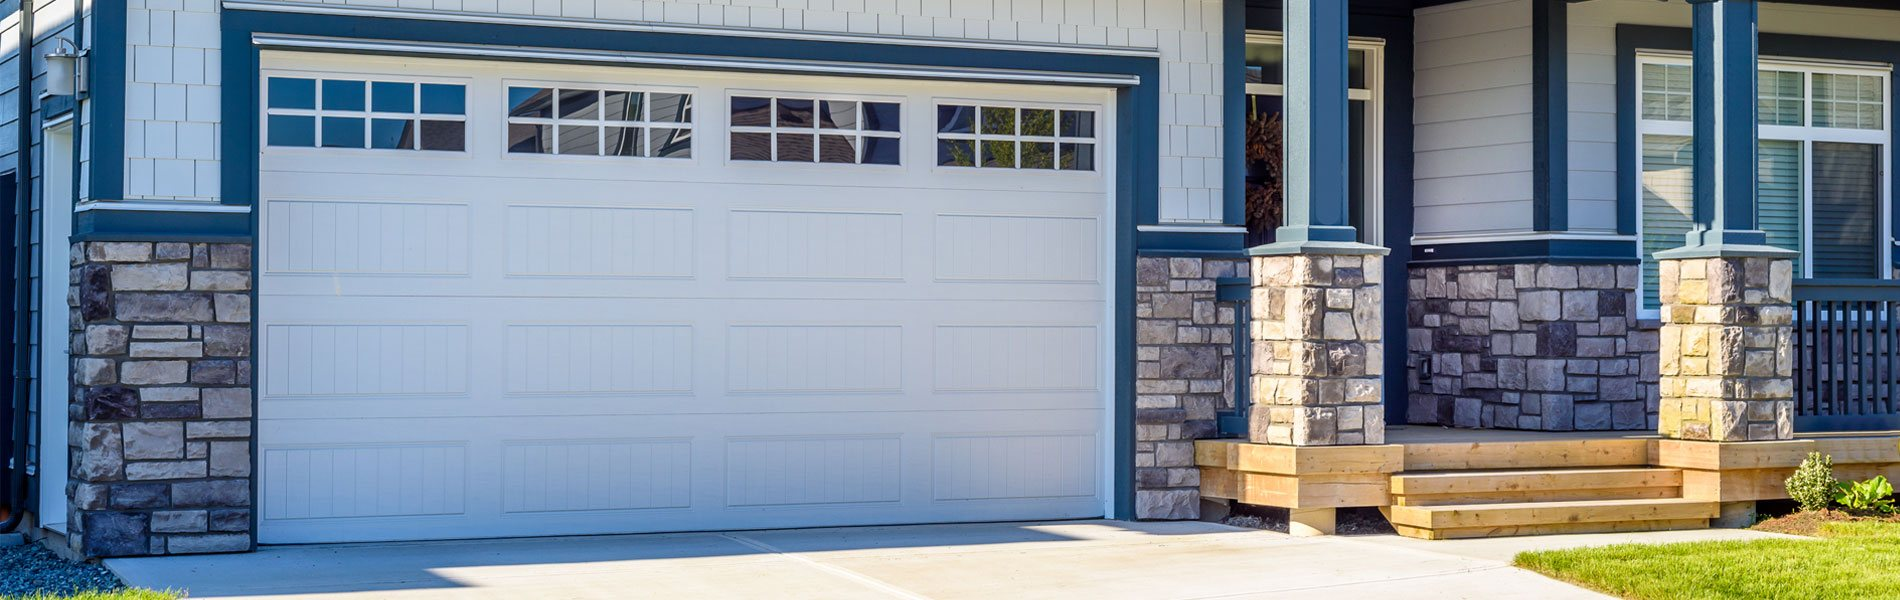 areas neighborhood huntersville garage a door contact charlotte wit about luxury nc of fragment north us house